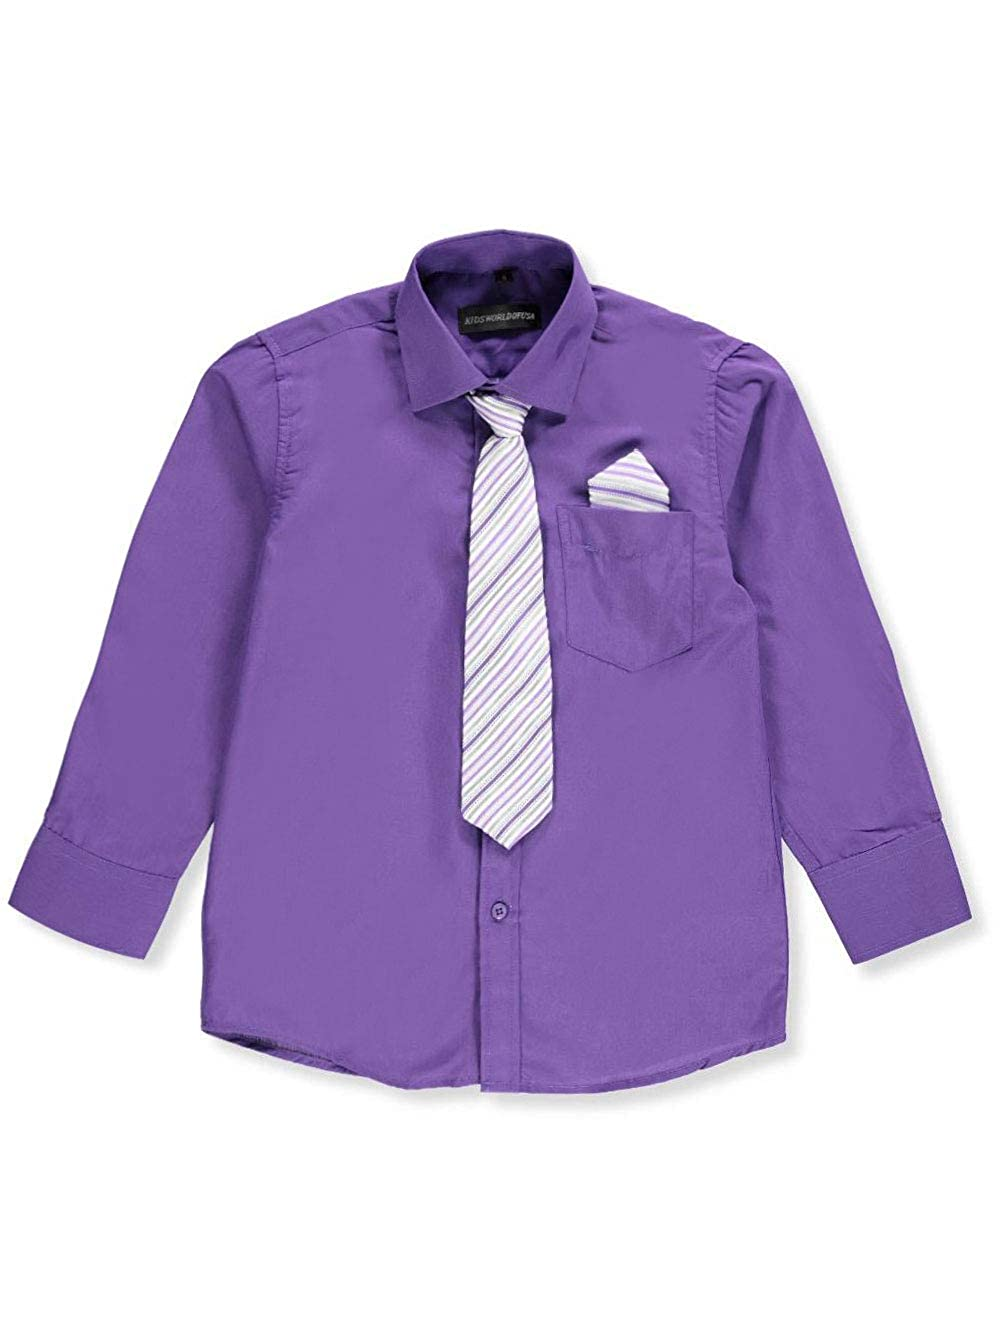 Kids World Boys Dress Shirt with Accessories